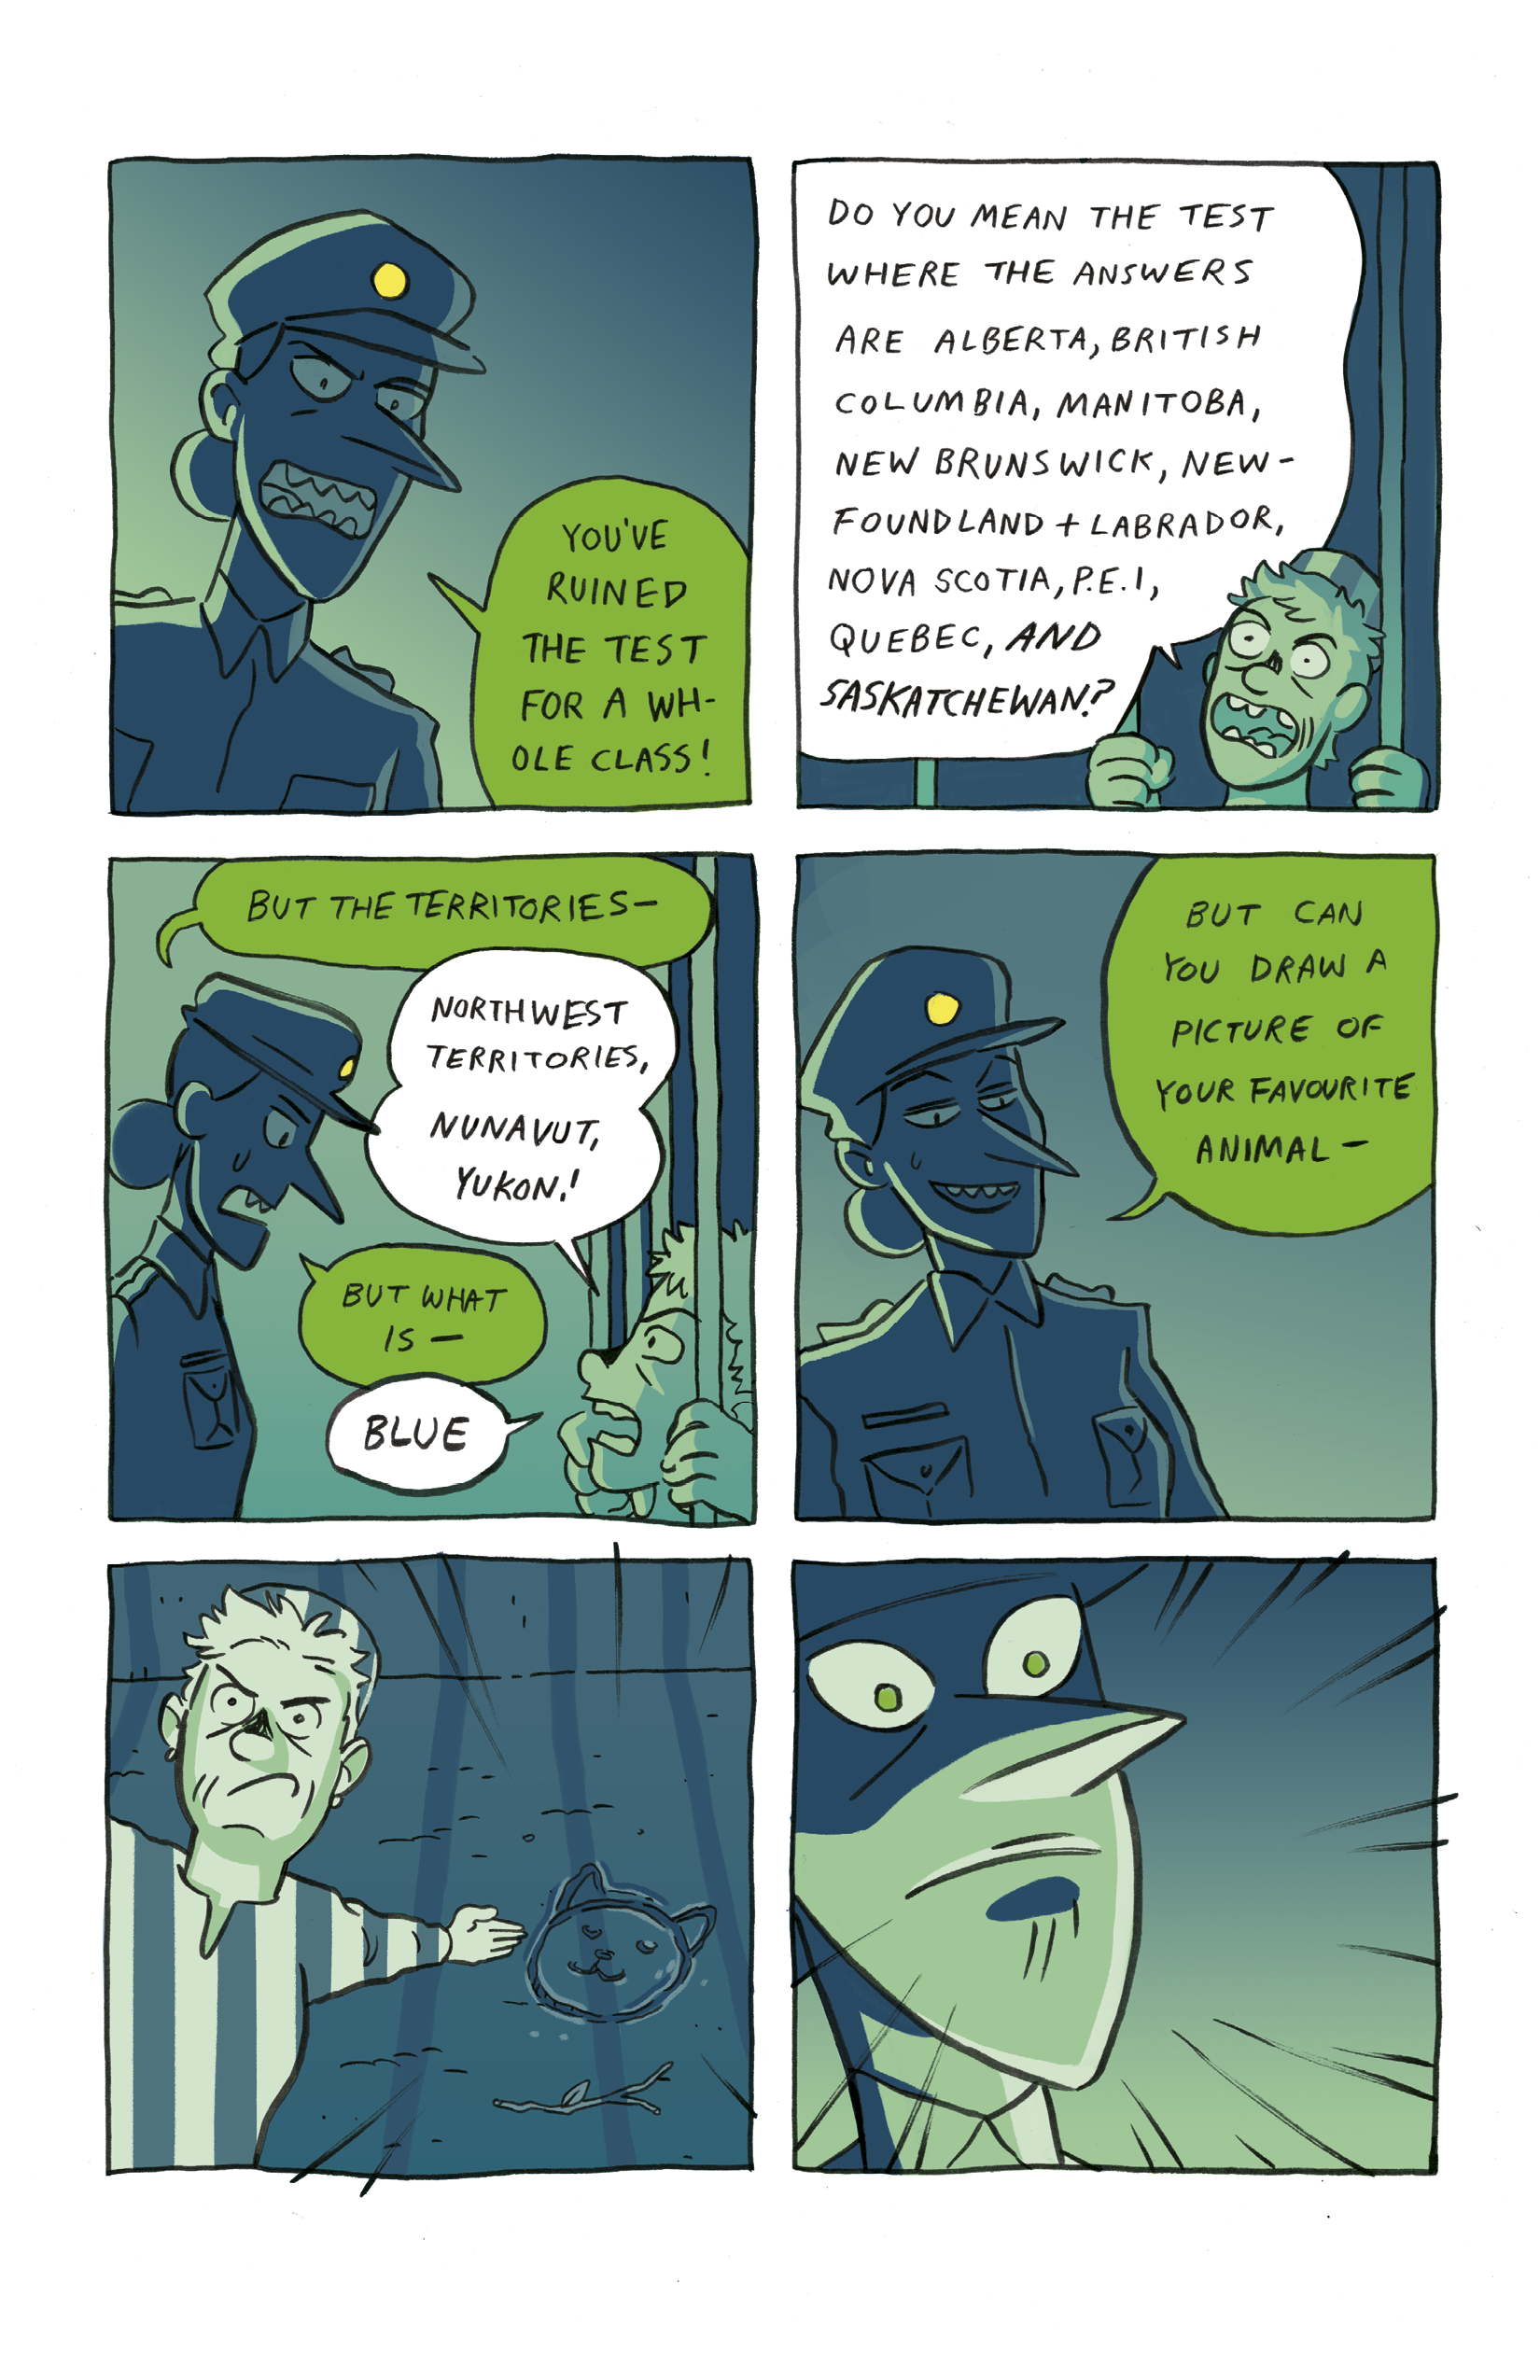 METANOIA_final_001_single_pages12.png